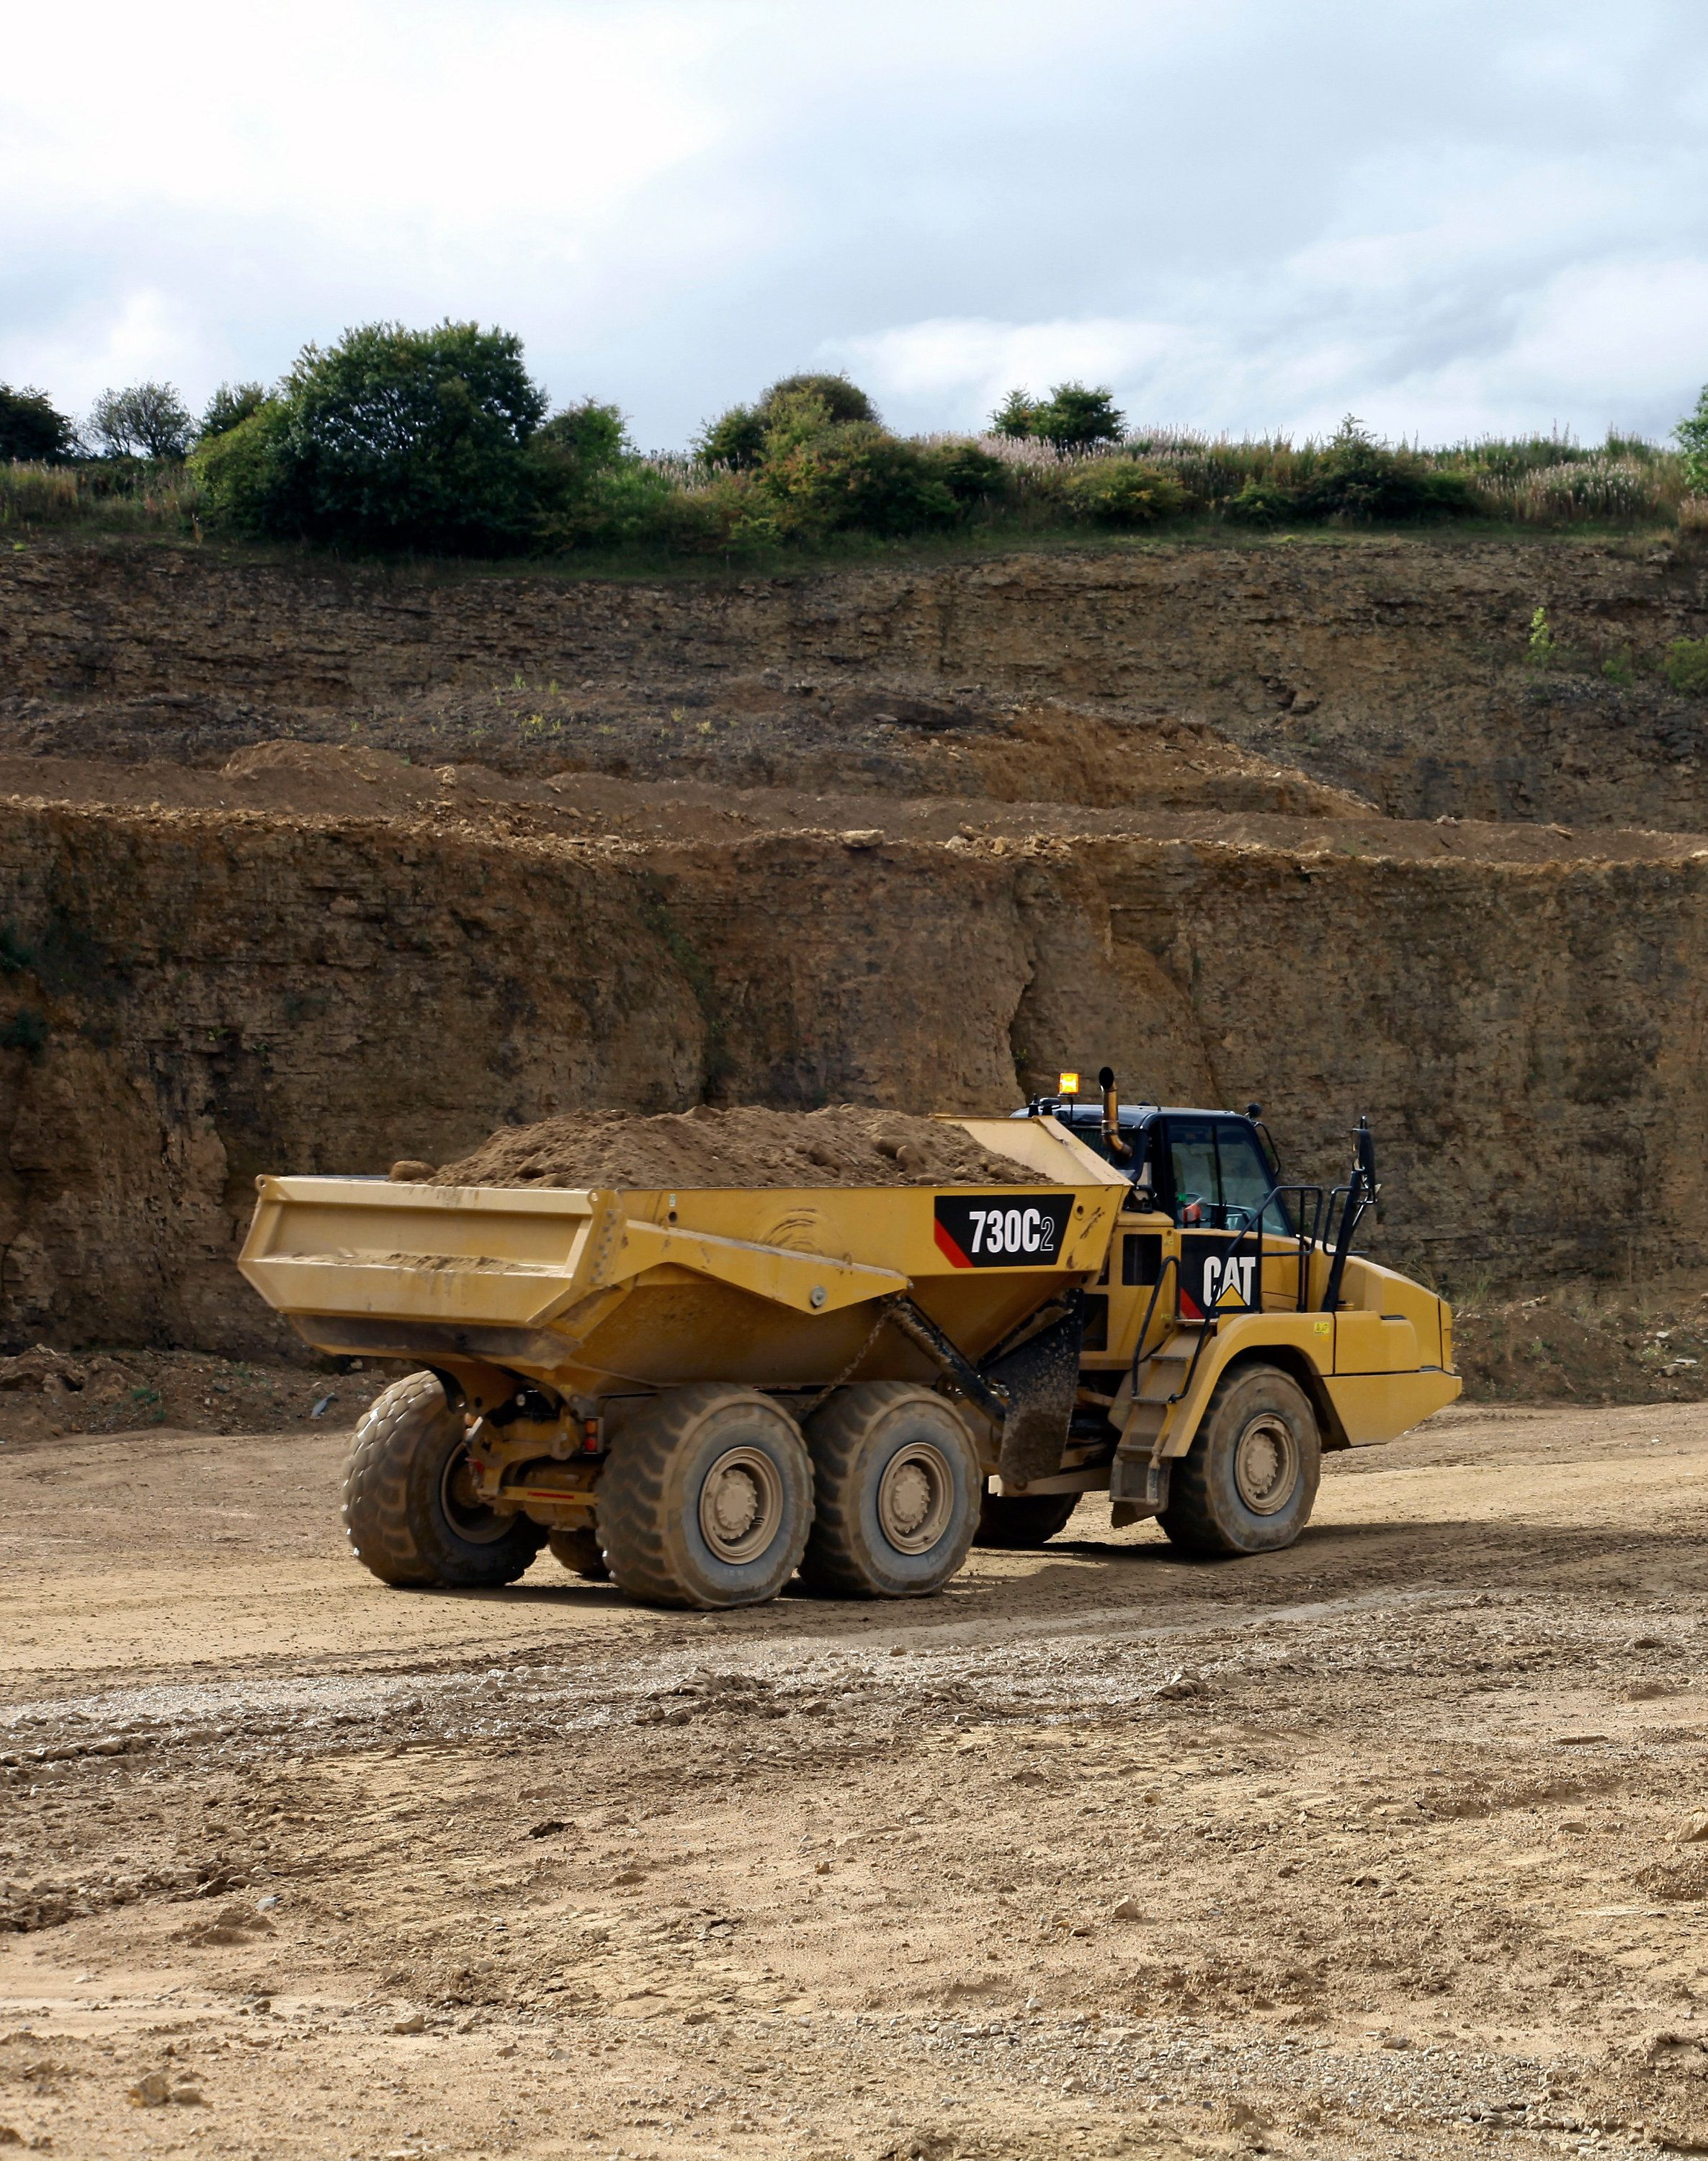 Cat C2 Series Articulated Trucks Feature More Power And Increased